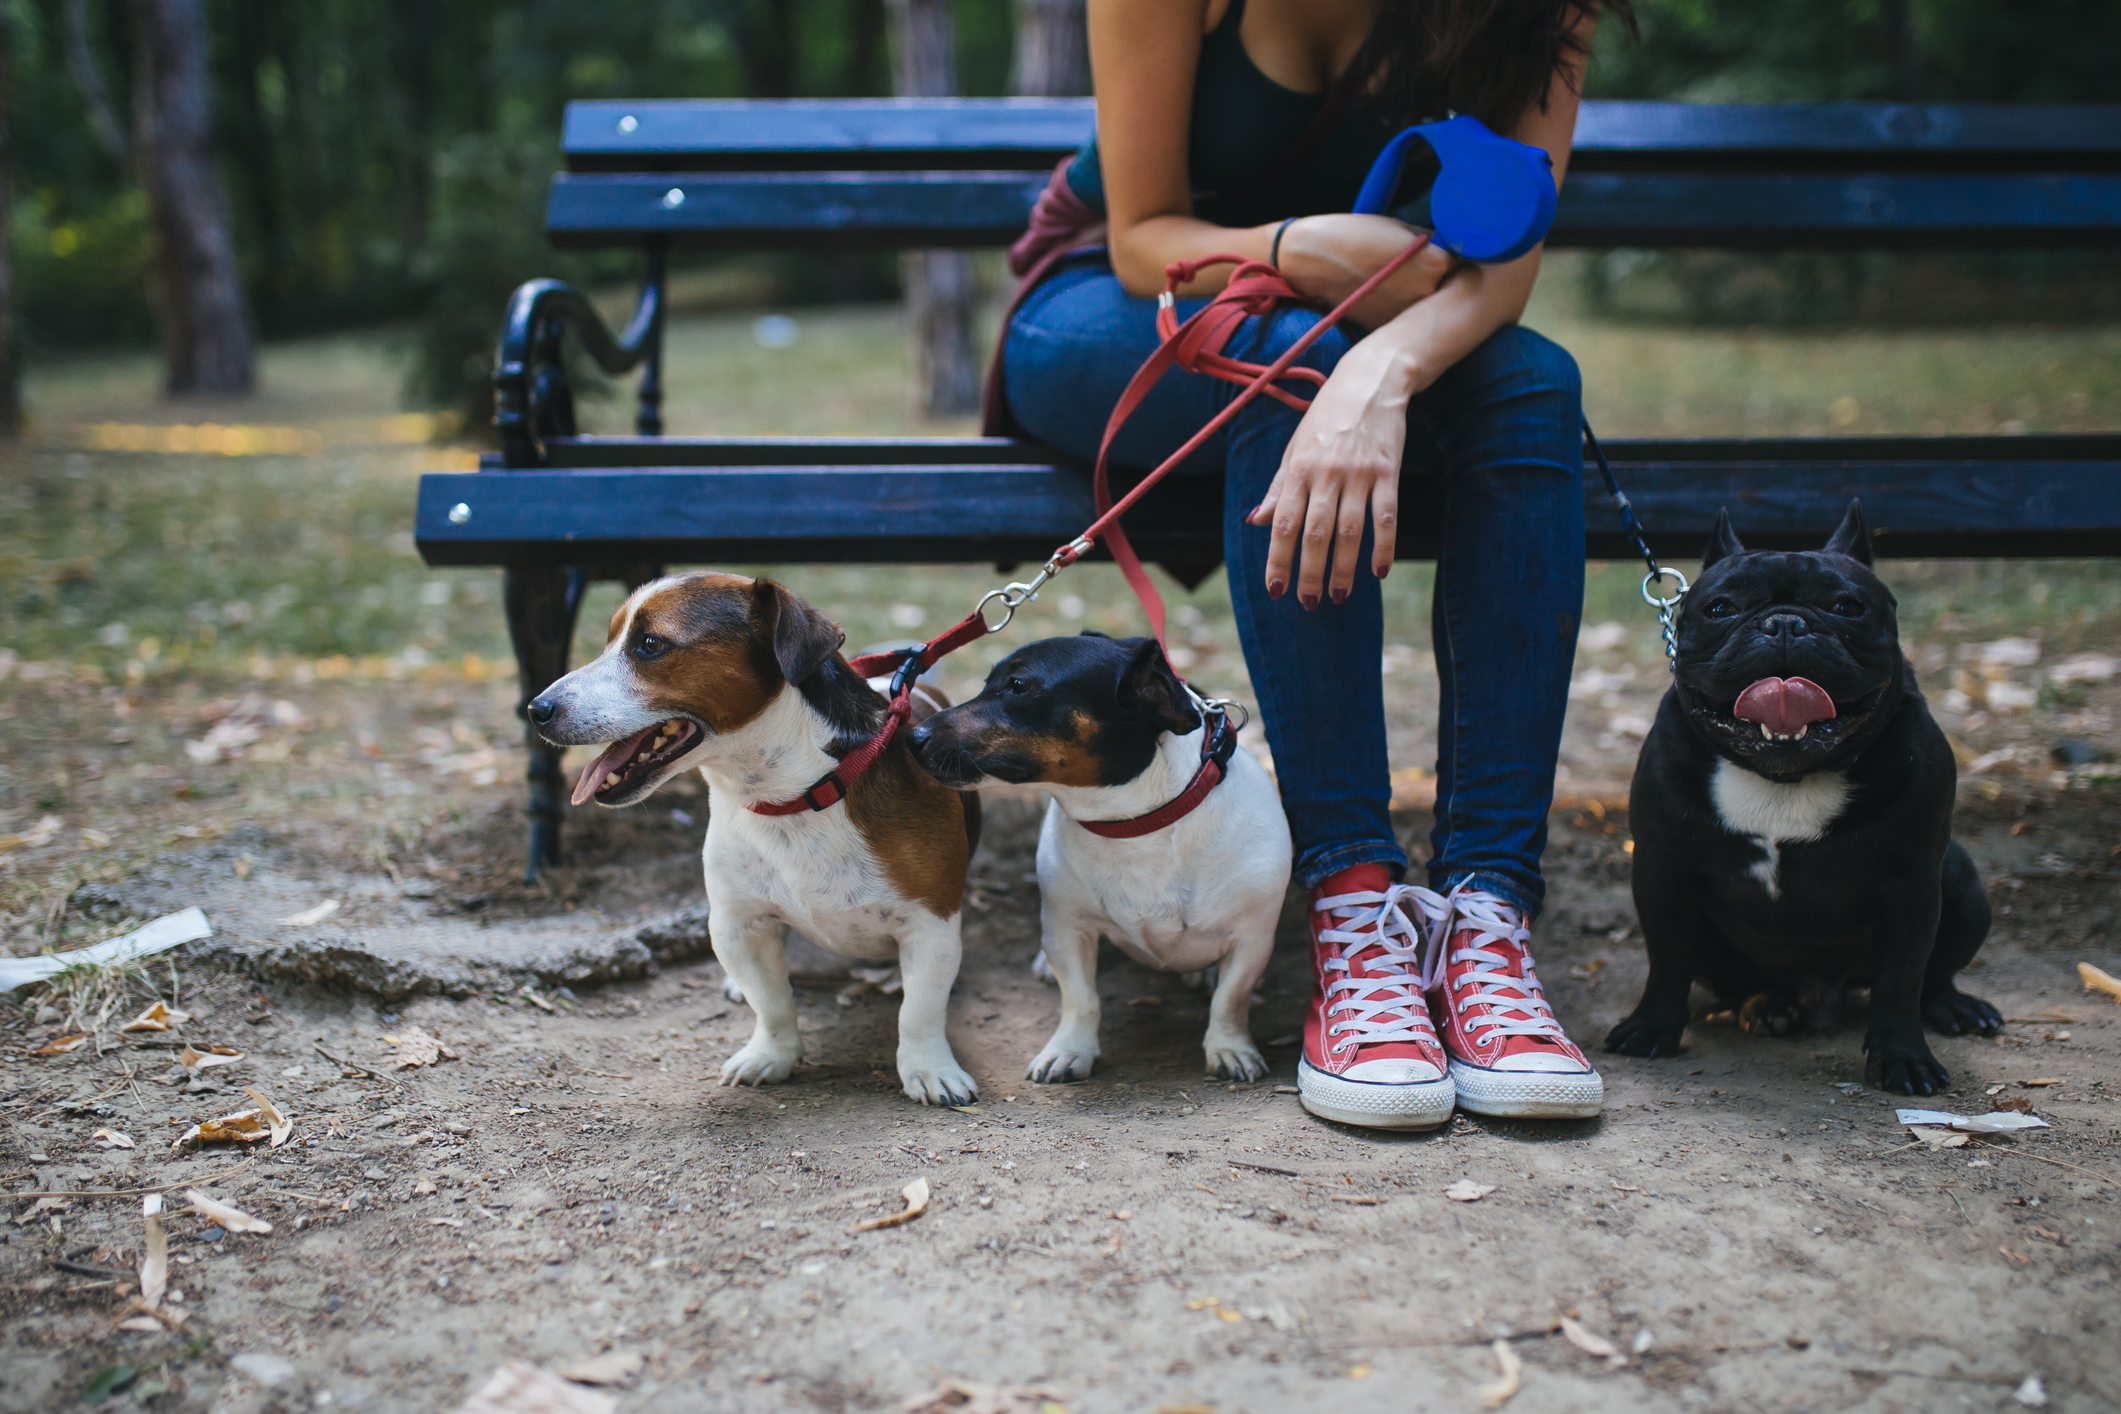 woman on park bench with three leashed dogs